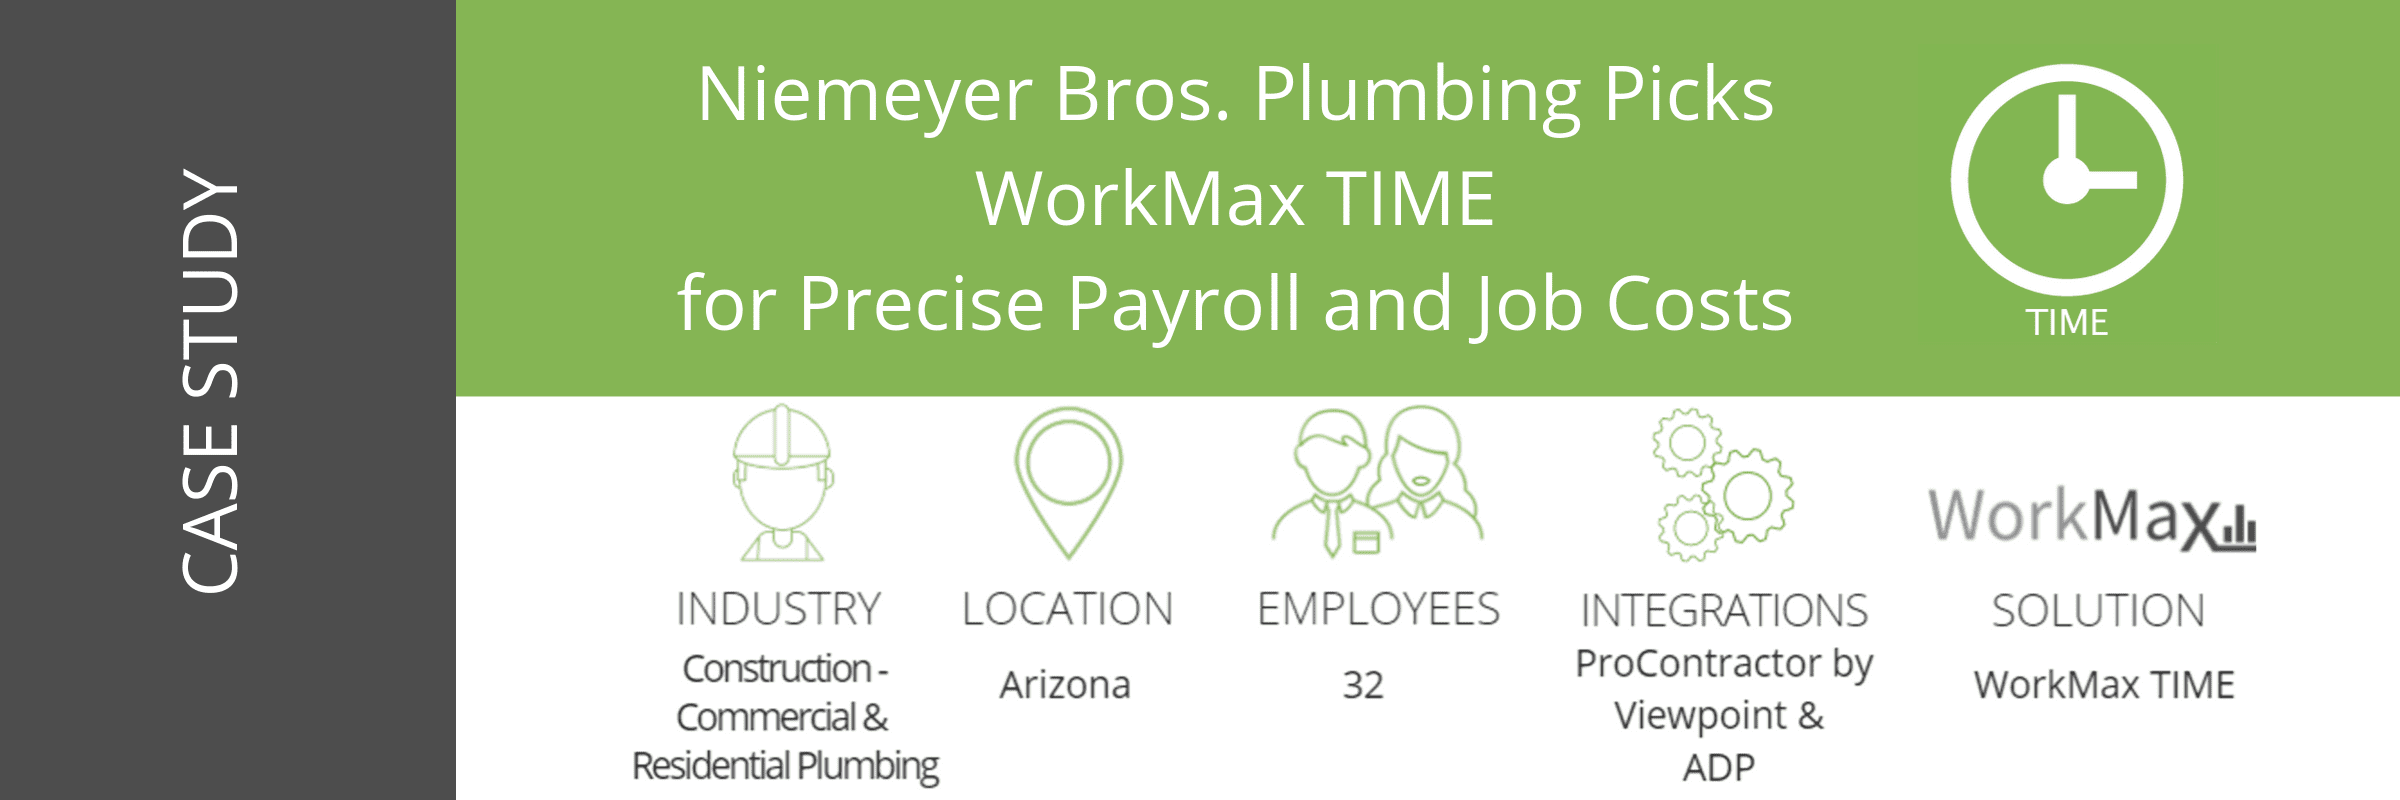 WorkMax TIME Niemeyer Case Study At A Glance